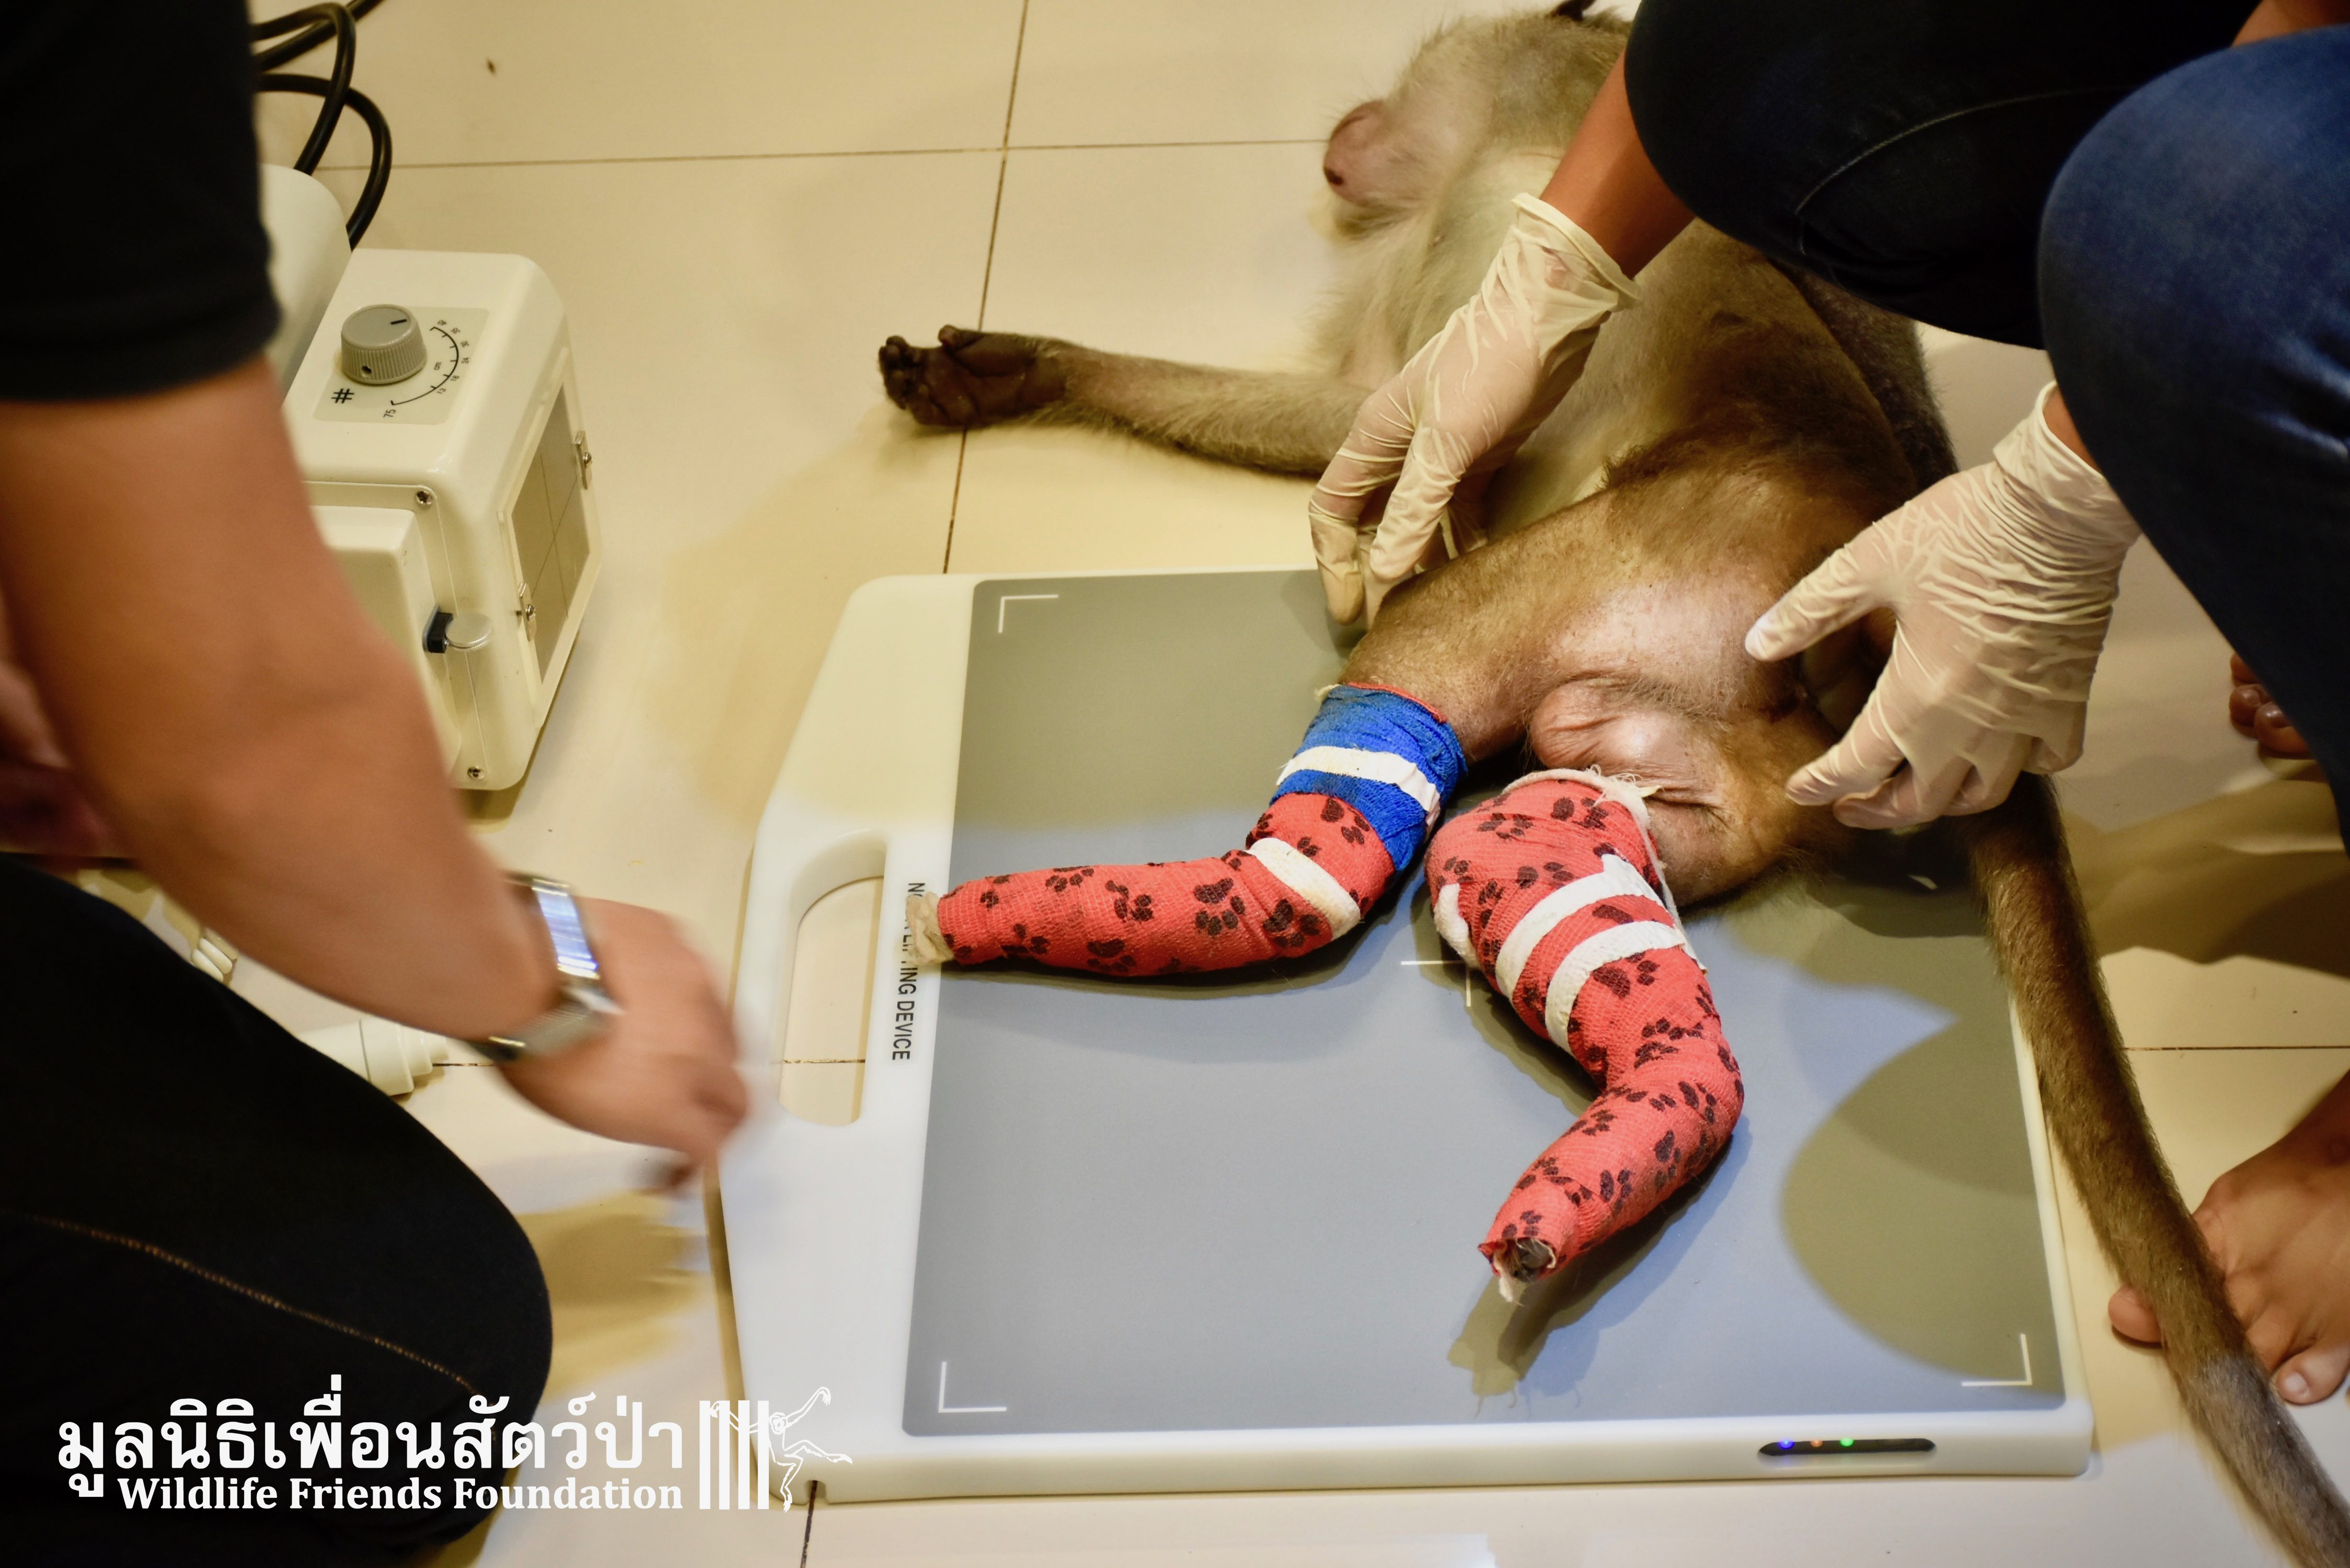 A Severely Injured Macaque Arrives at WFFT Wildlife Hospital for